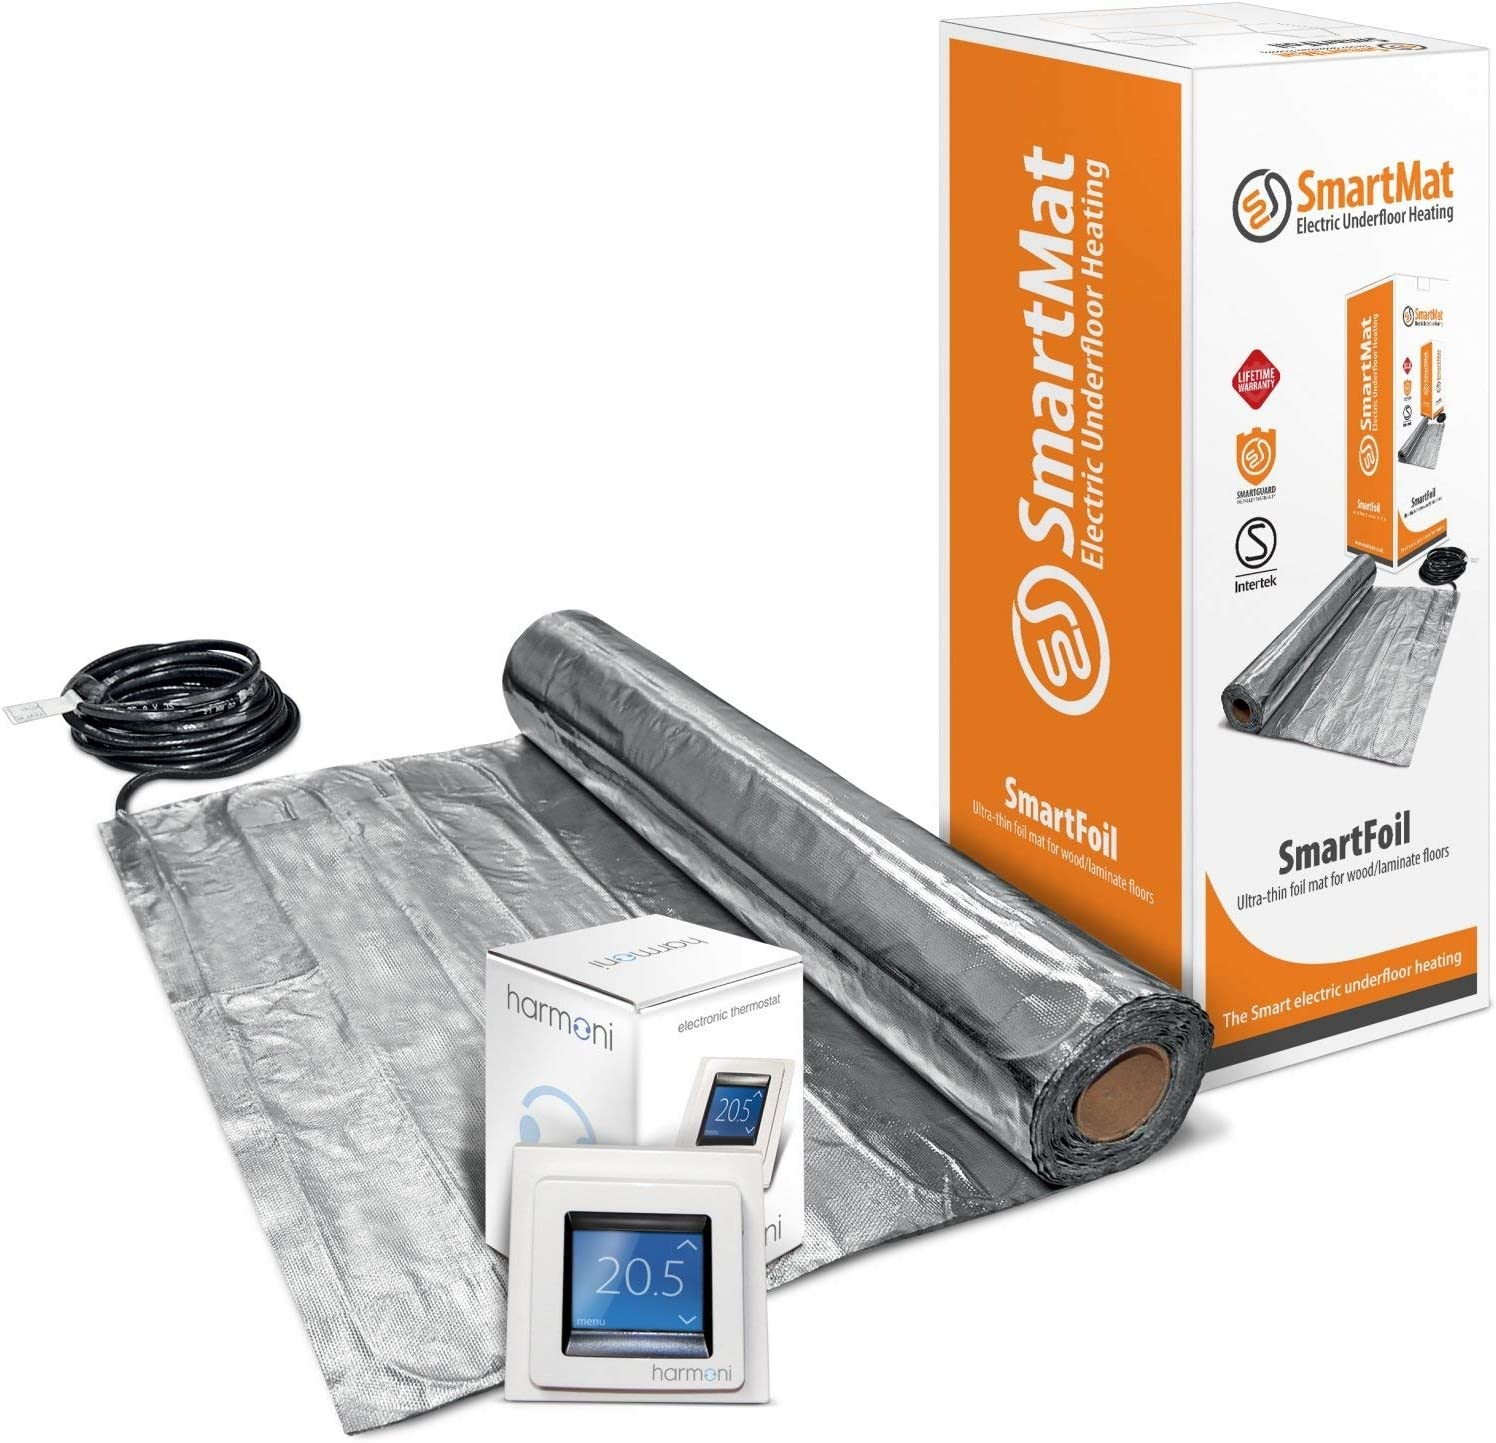 SmartFoil 140w//m2 Electric 9.0m2 1260w, Thermostat Choice - Mat Only Electric Underwood Foil Heating Mat Kit